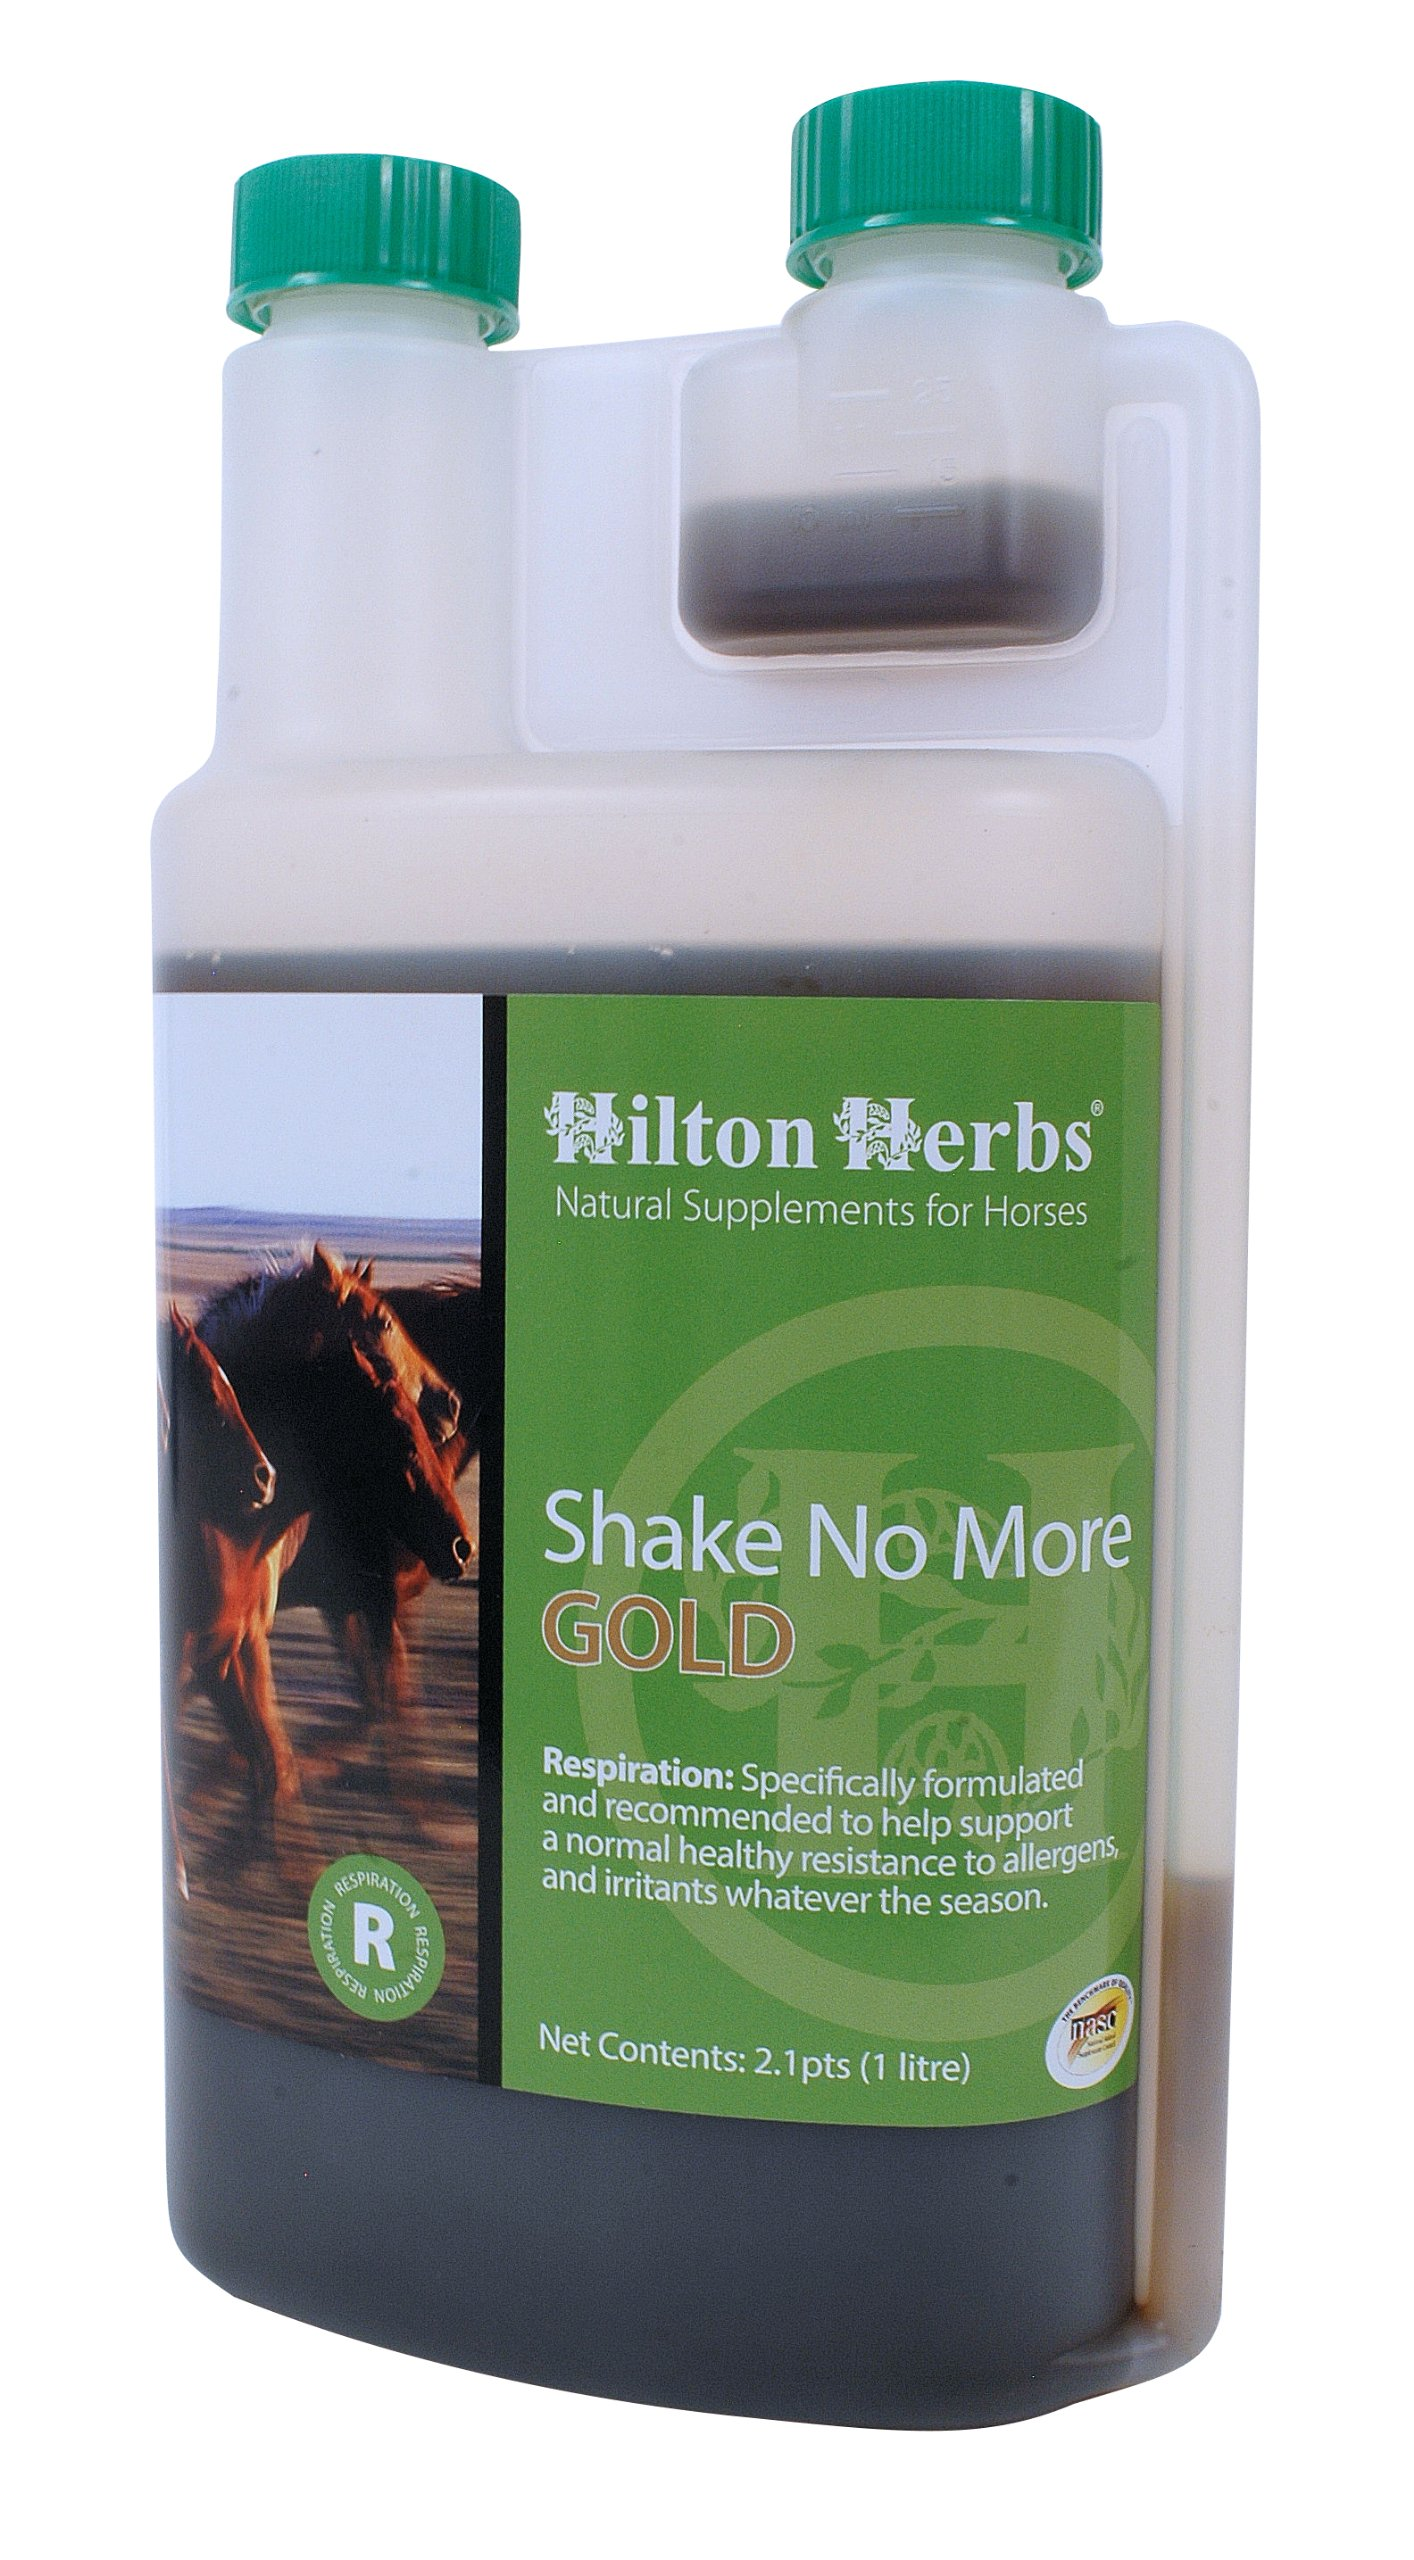 Hilton Herbs Shake No More Gold Allergy Support Supplement for Horses, 2.1pt Bottle by Hilton Herbs